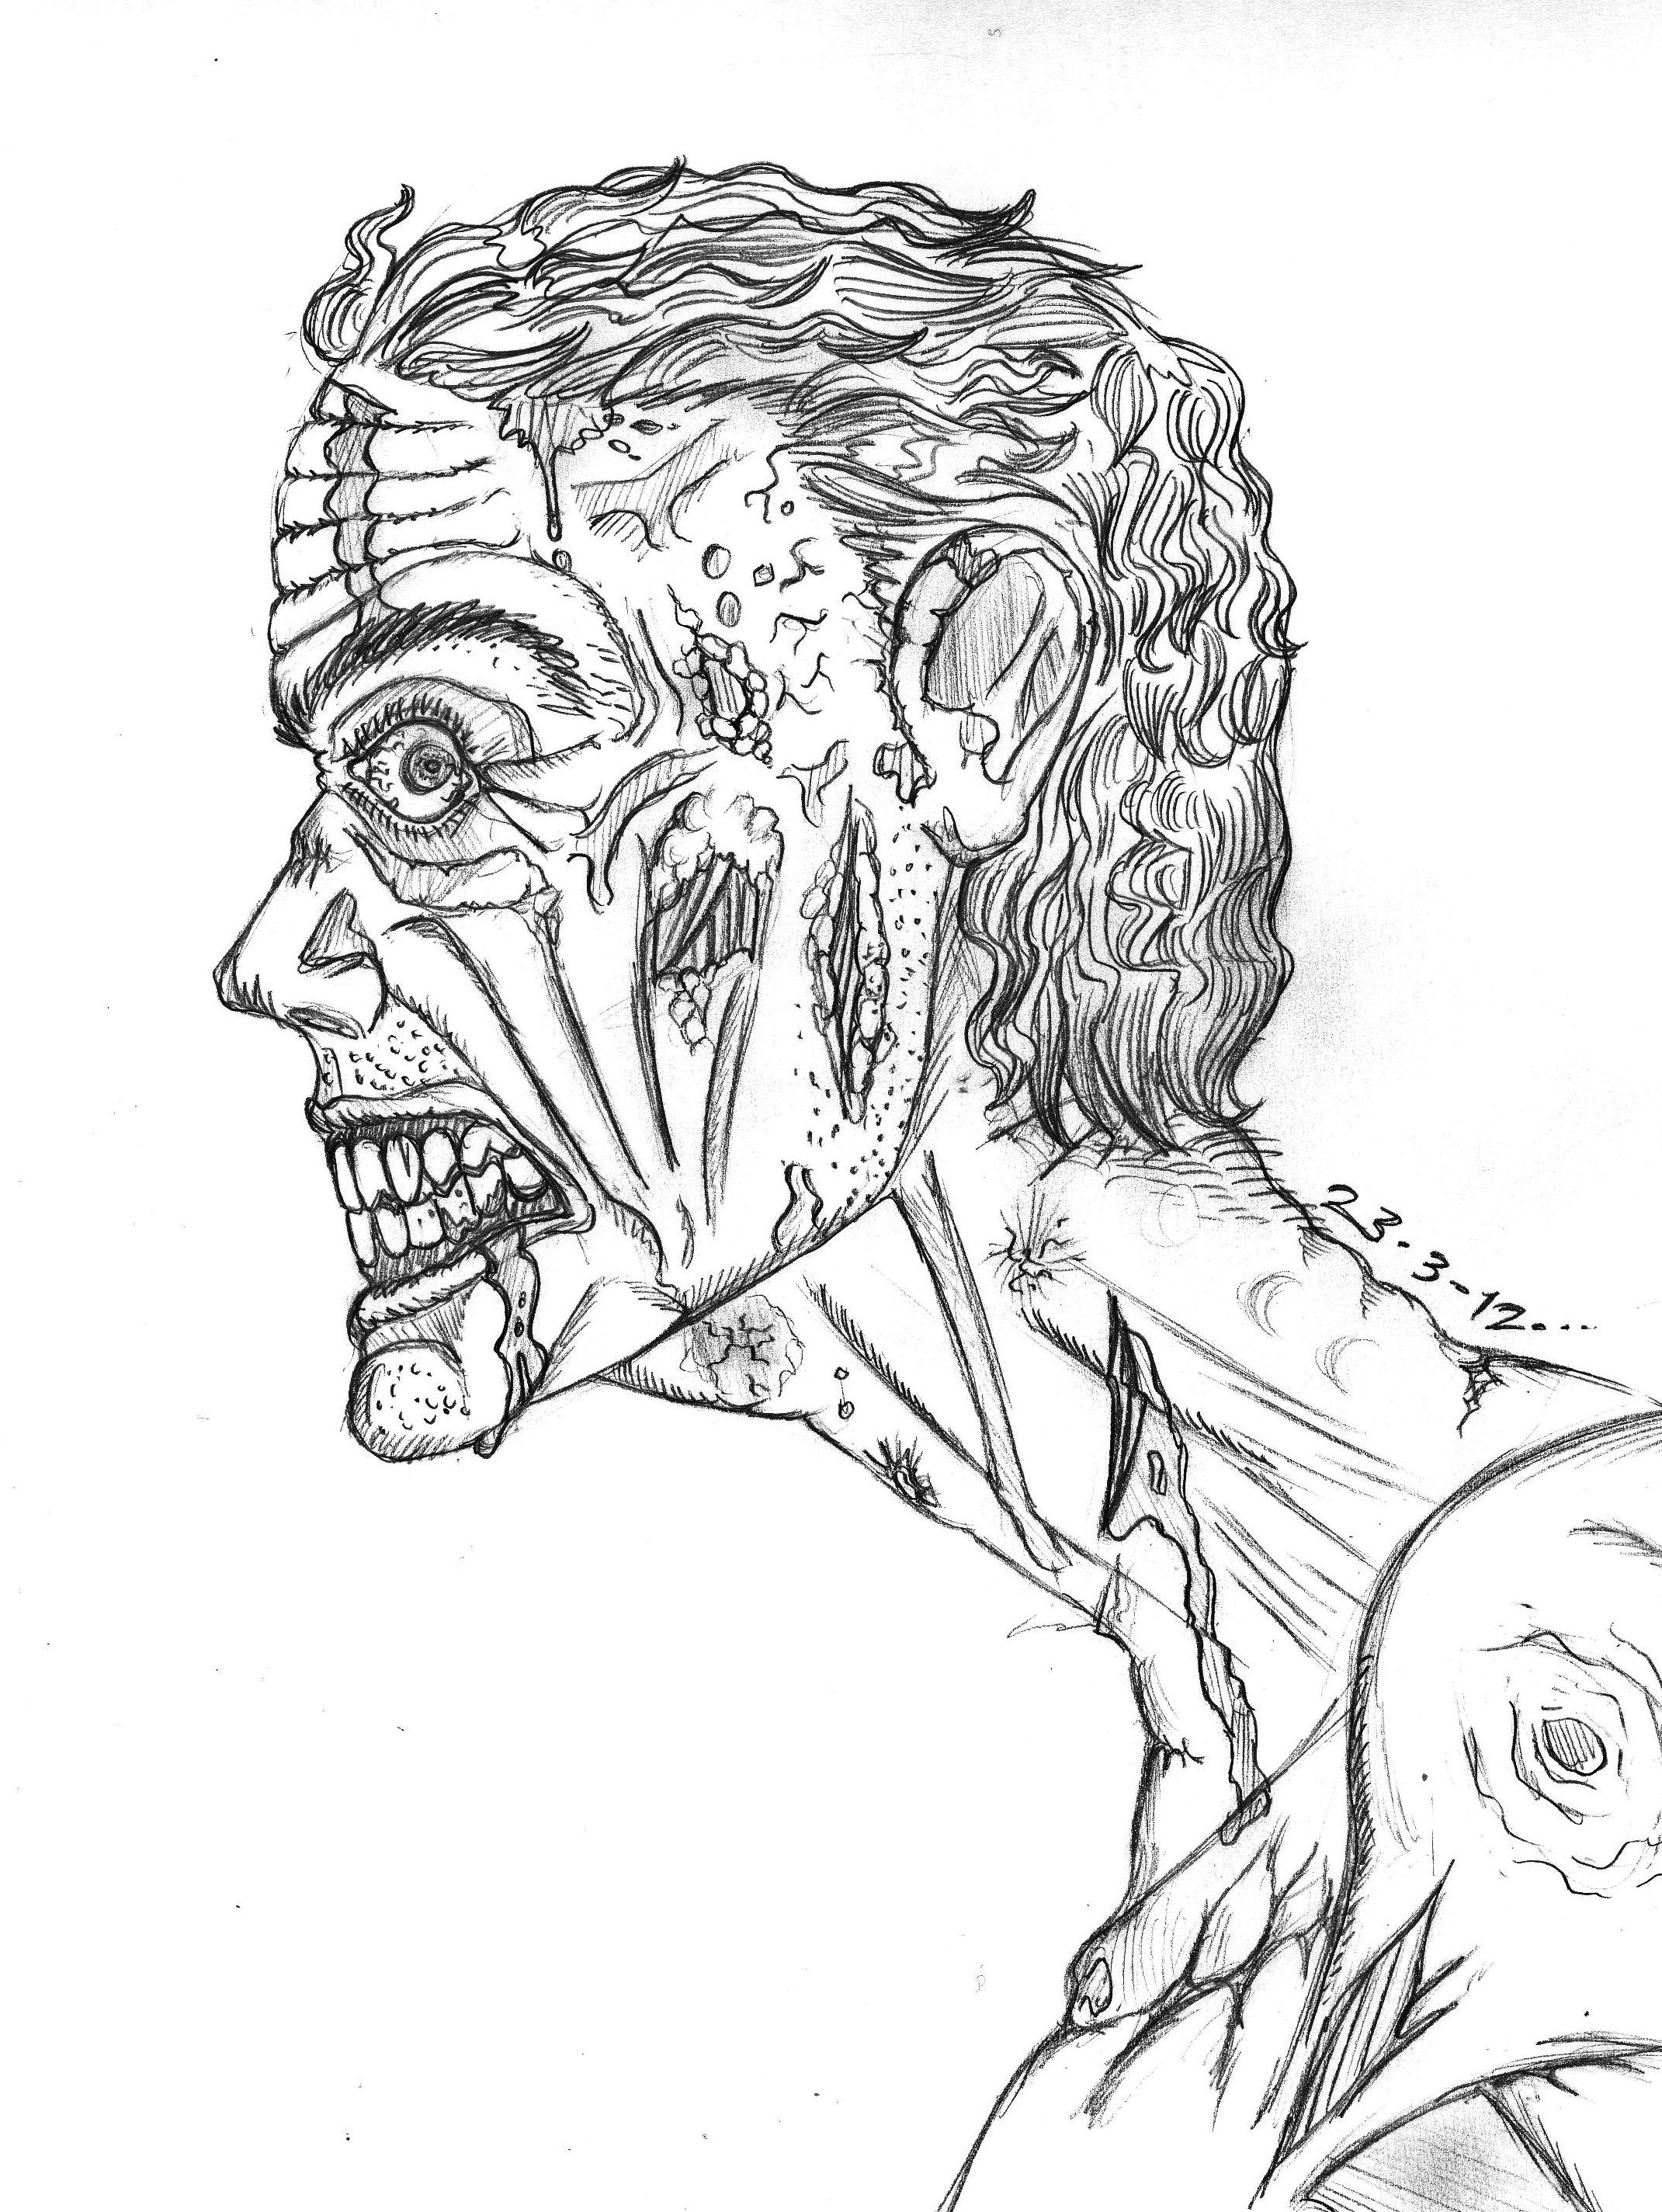 zombie sketch art zombie sketch by thewallproducciones sketch artzombiestattoo coveringcolouring sheets - Black Ops Zombies Coloring Pages